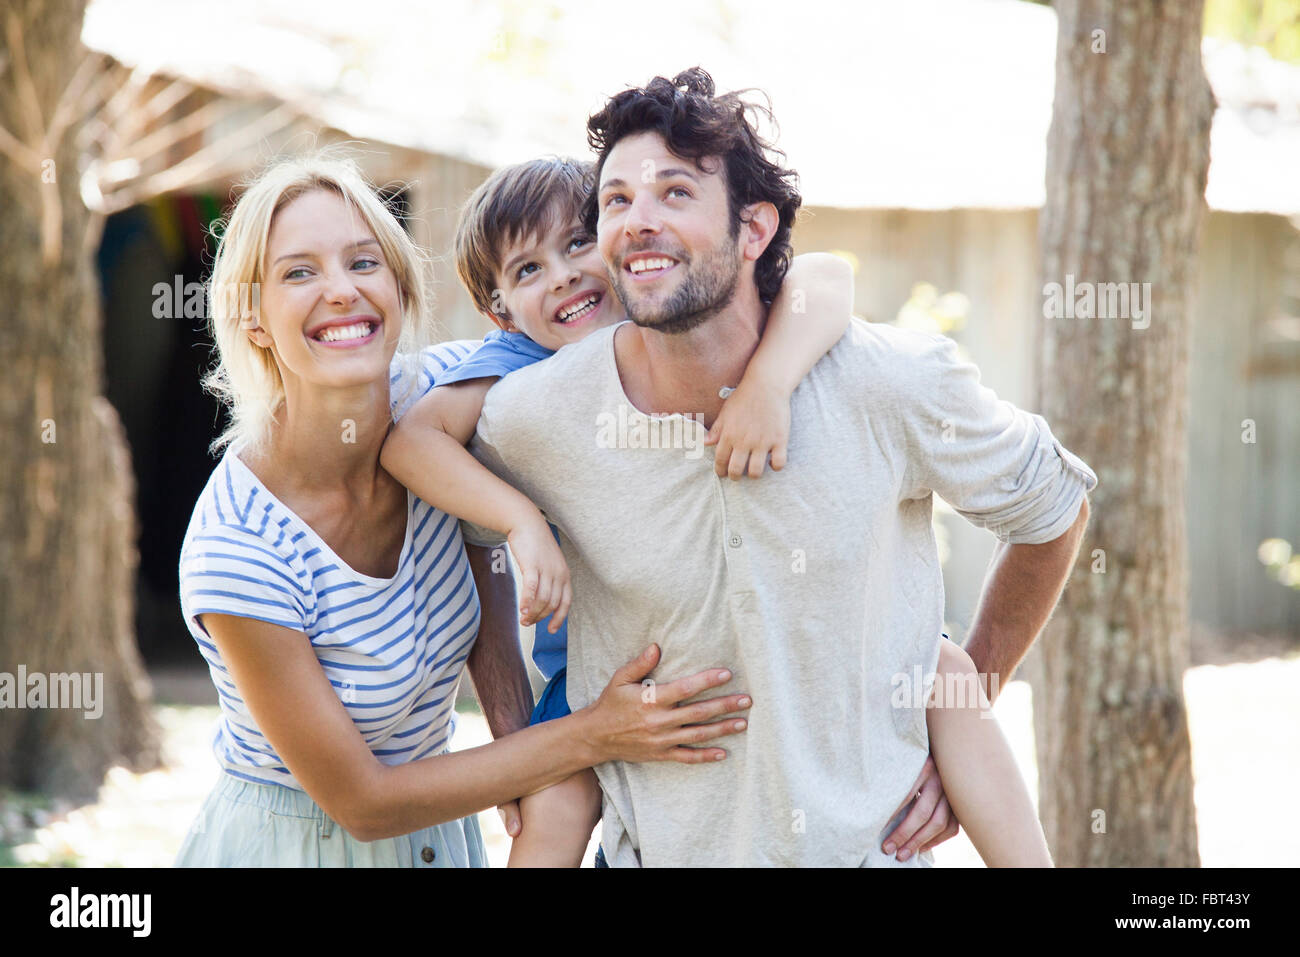 Famille d'un enfant, portrait Photo Stock